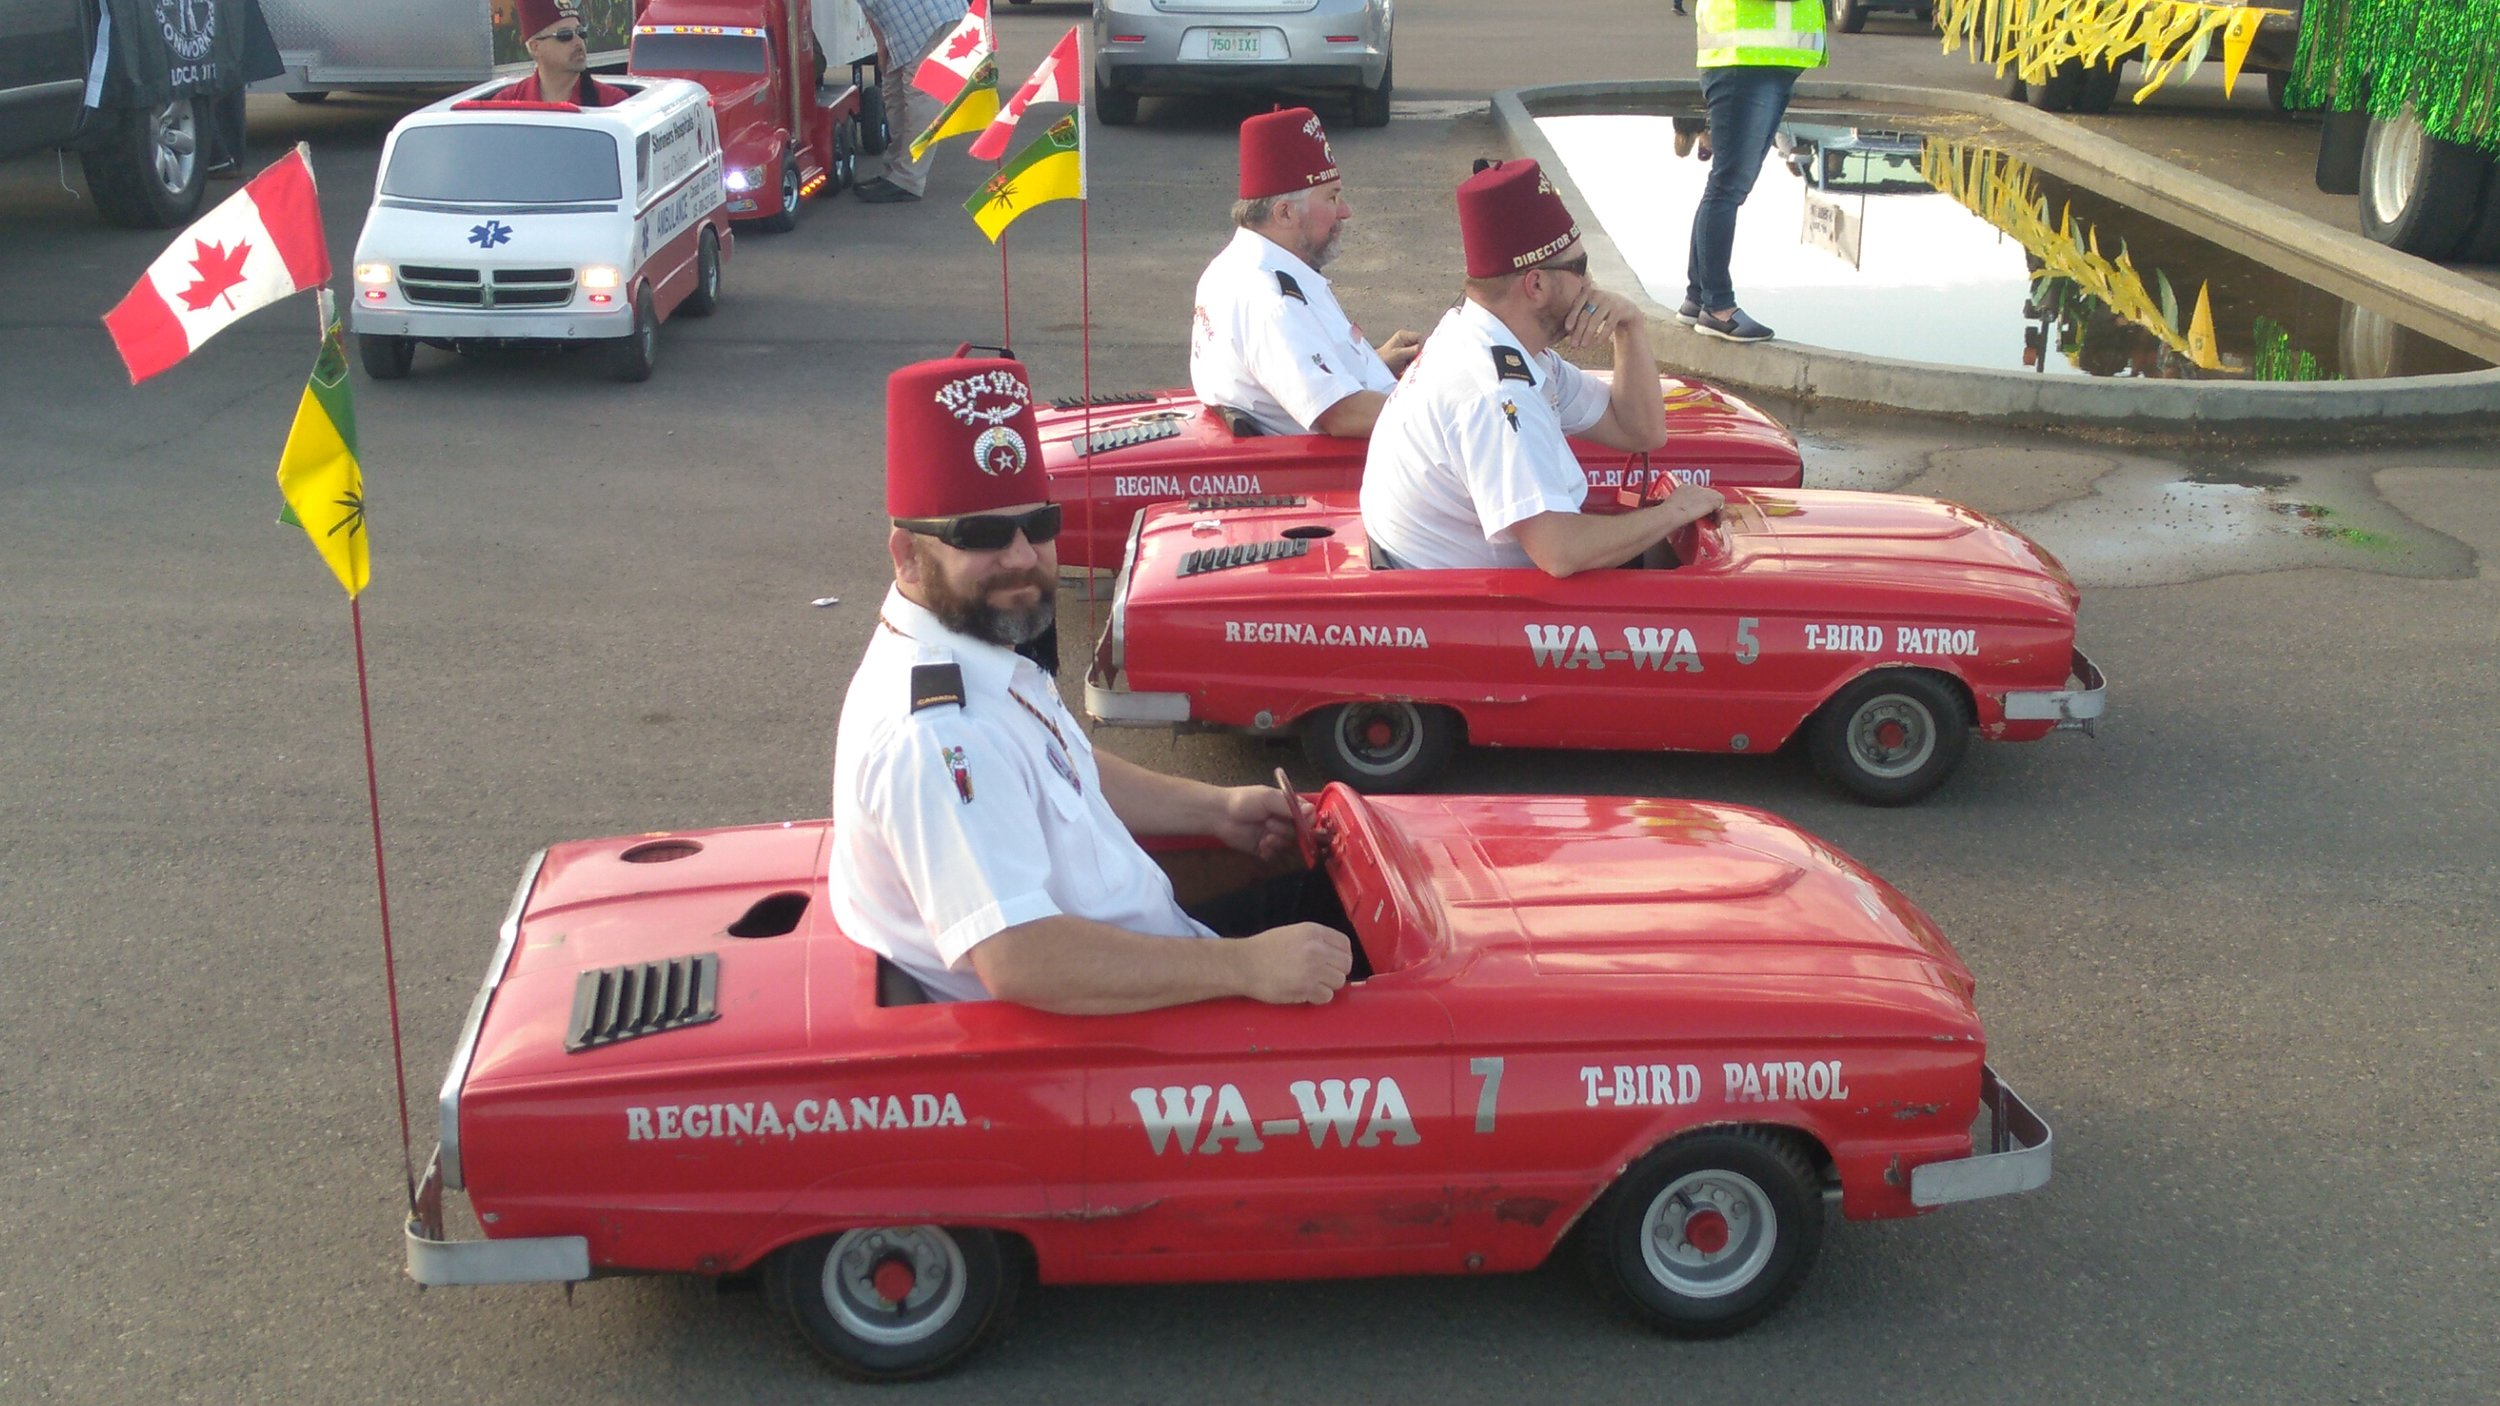 The Shriners Had The Tiny Cars Out For A Cruise